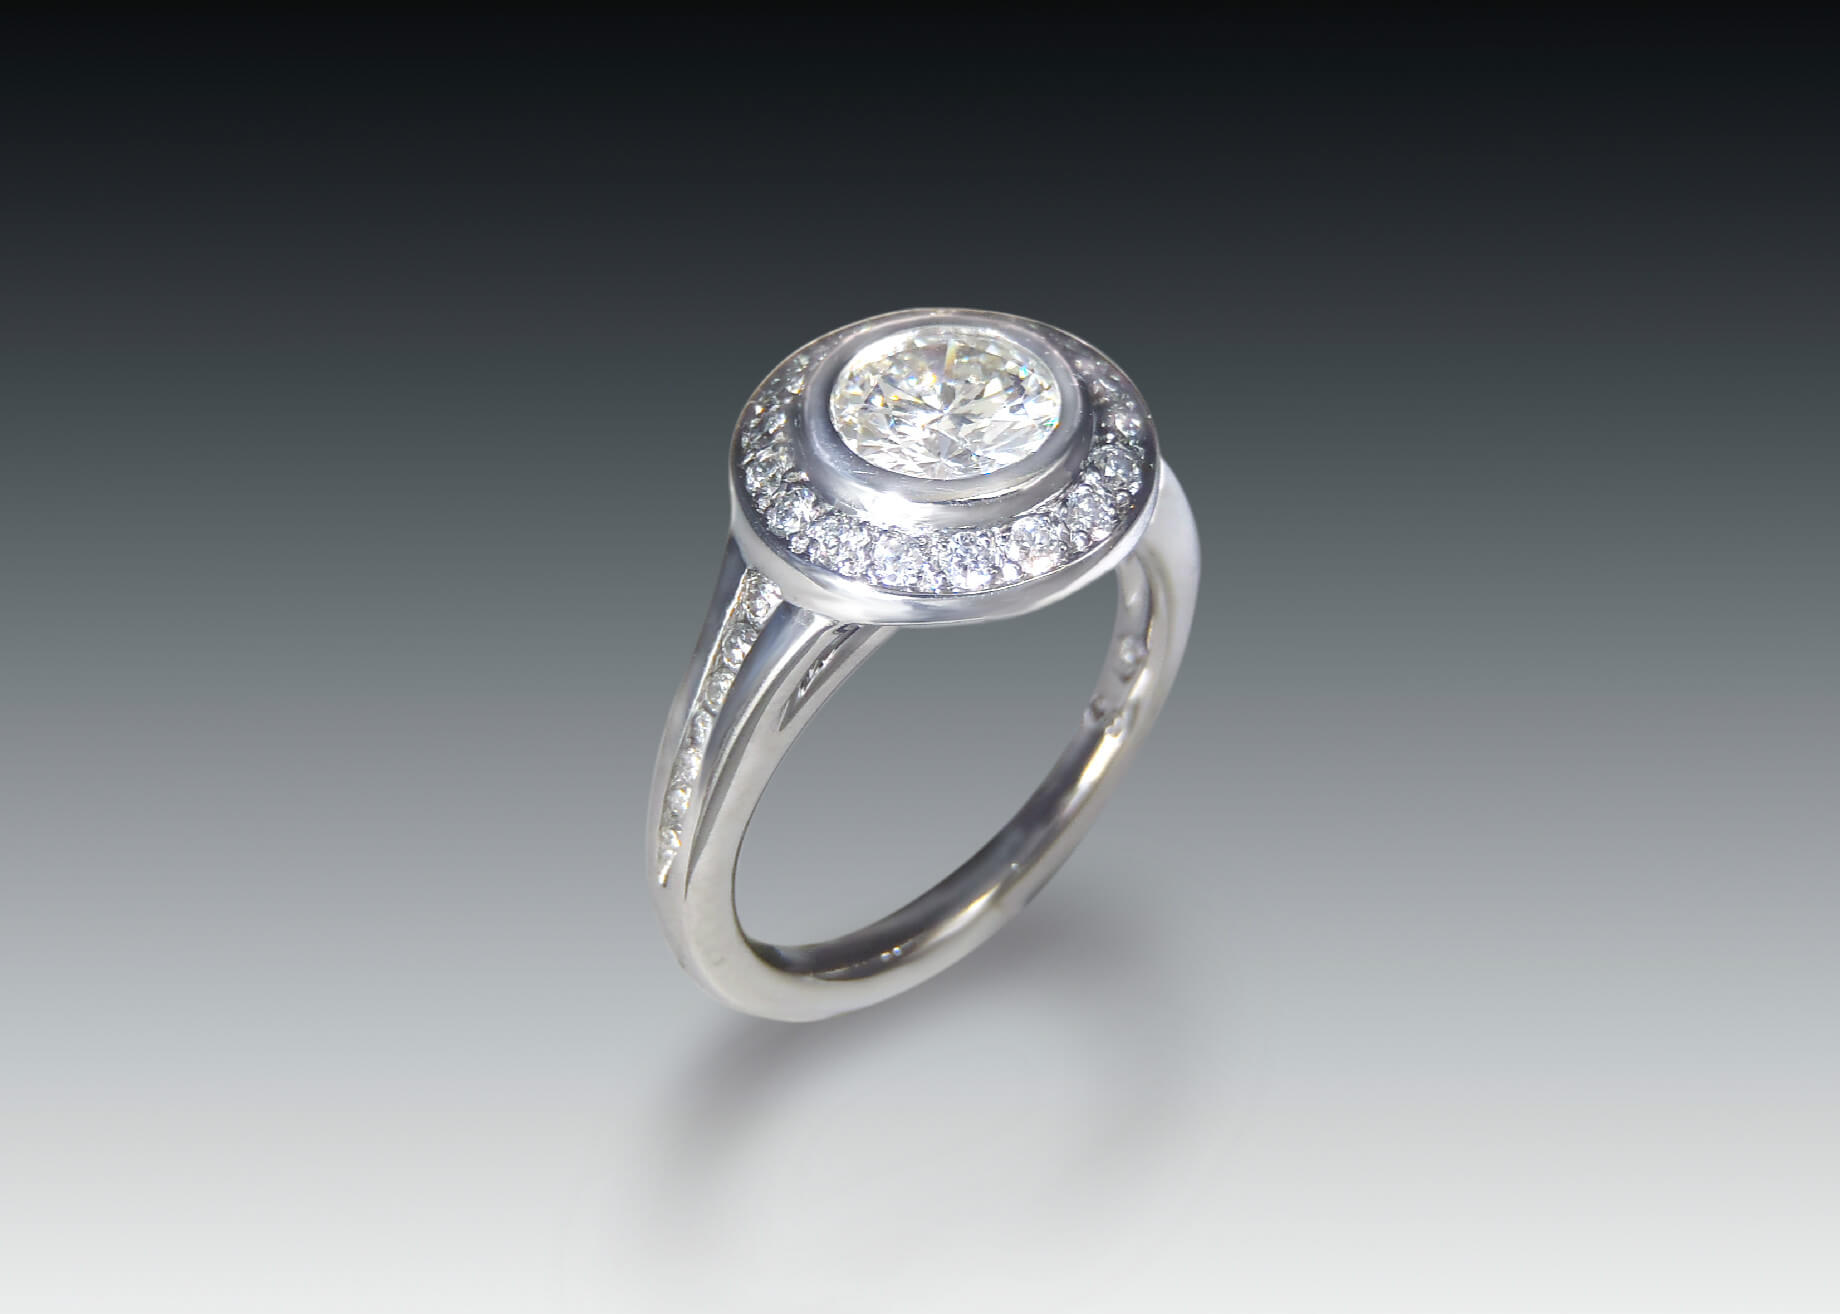 Bespoke Engagement Rings & Wedding Bands